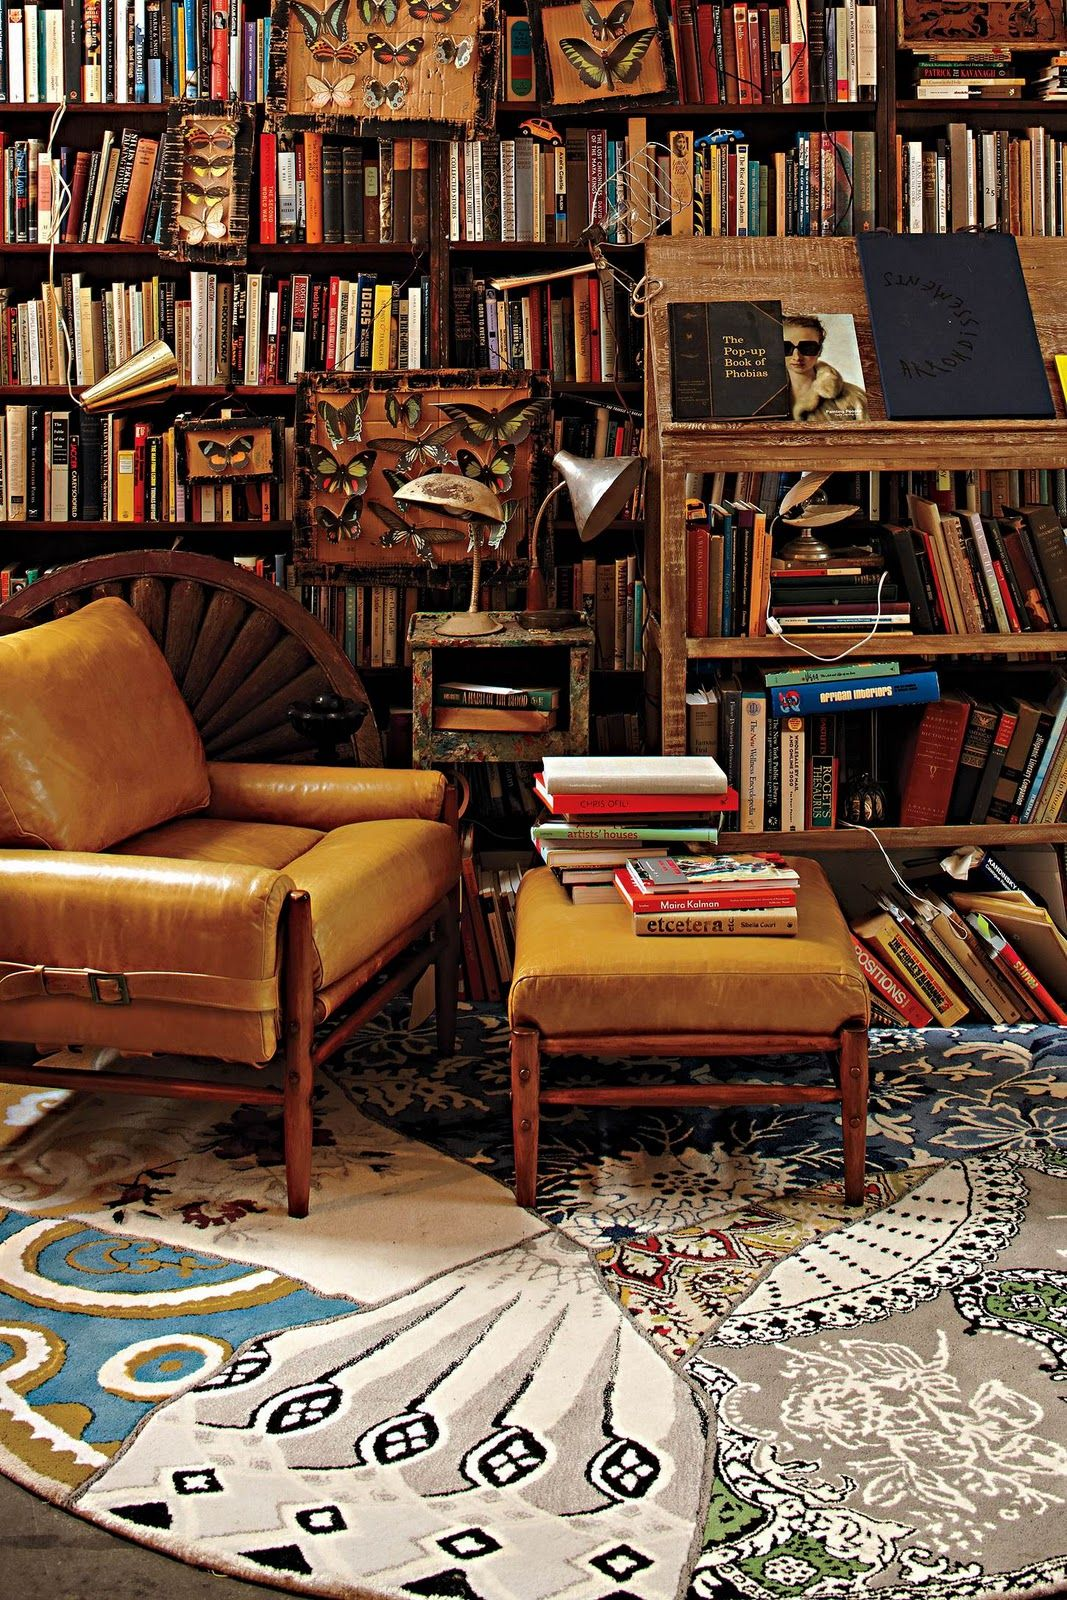 Lush Bohemian Library Love The Vintage Tan Leather Arm